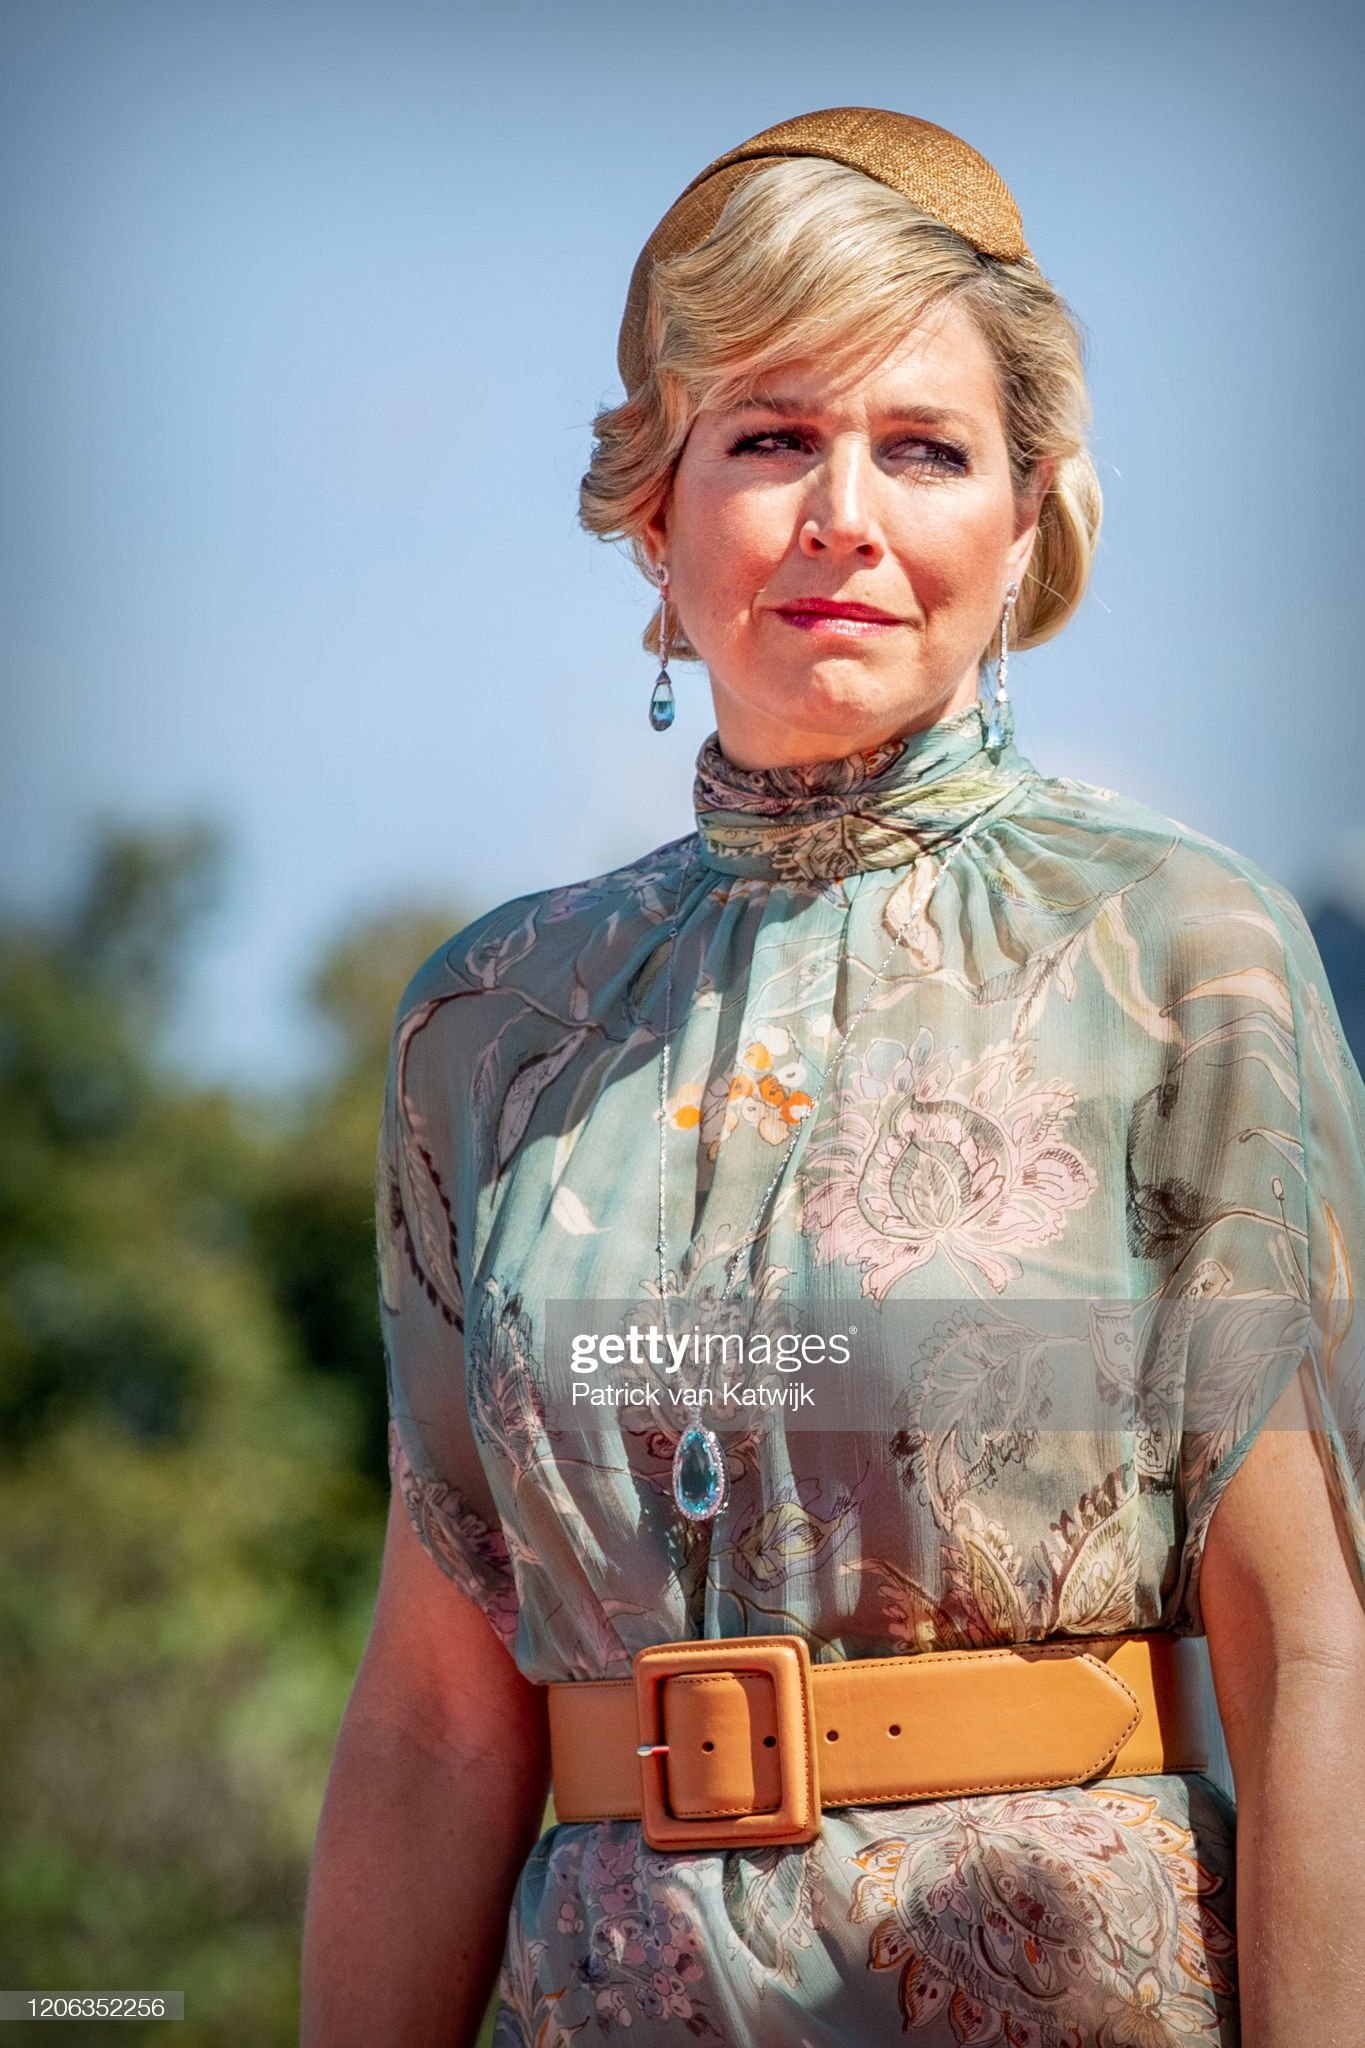 https://media.gettyimages.com/photos/queen-maxima-of-the-netherlands-during-a-wreath-laying-ceremony-at-picture-id1206352256?s=2048x2048